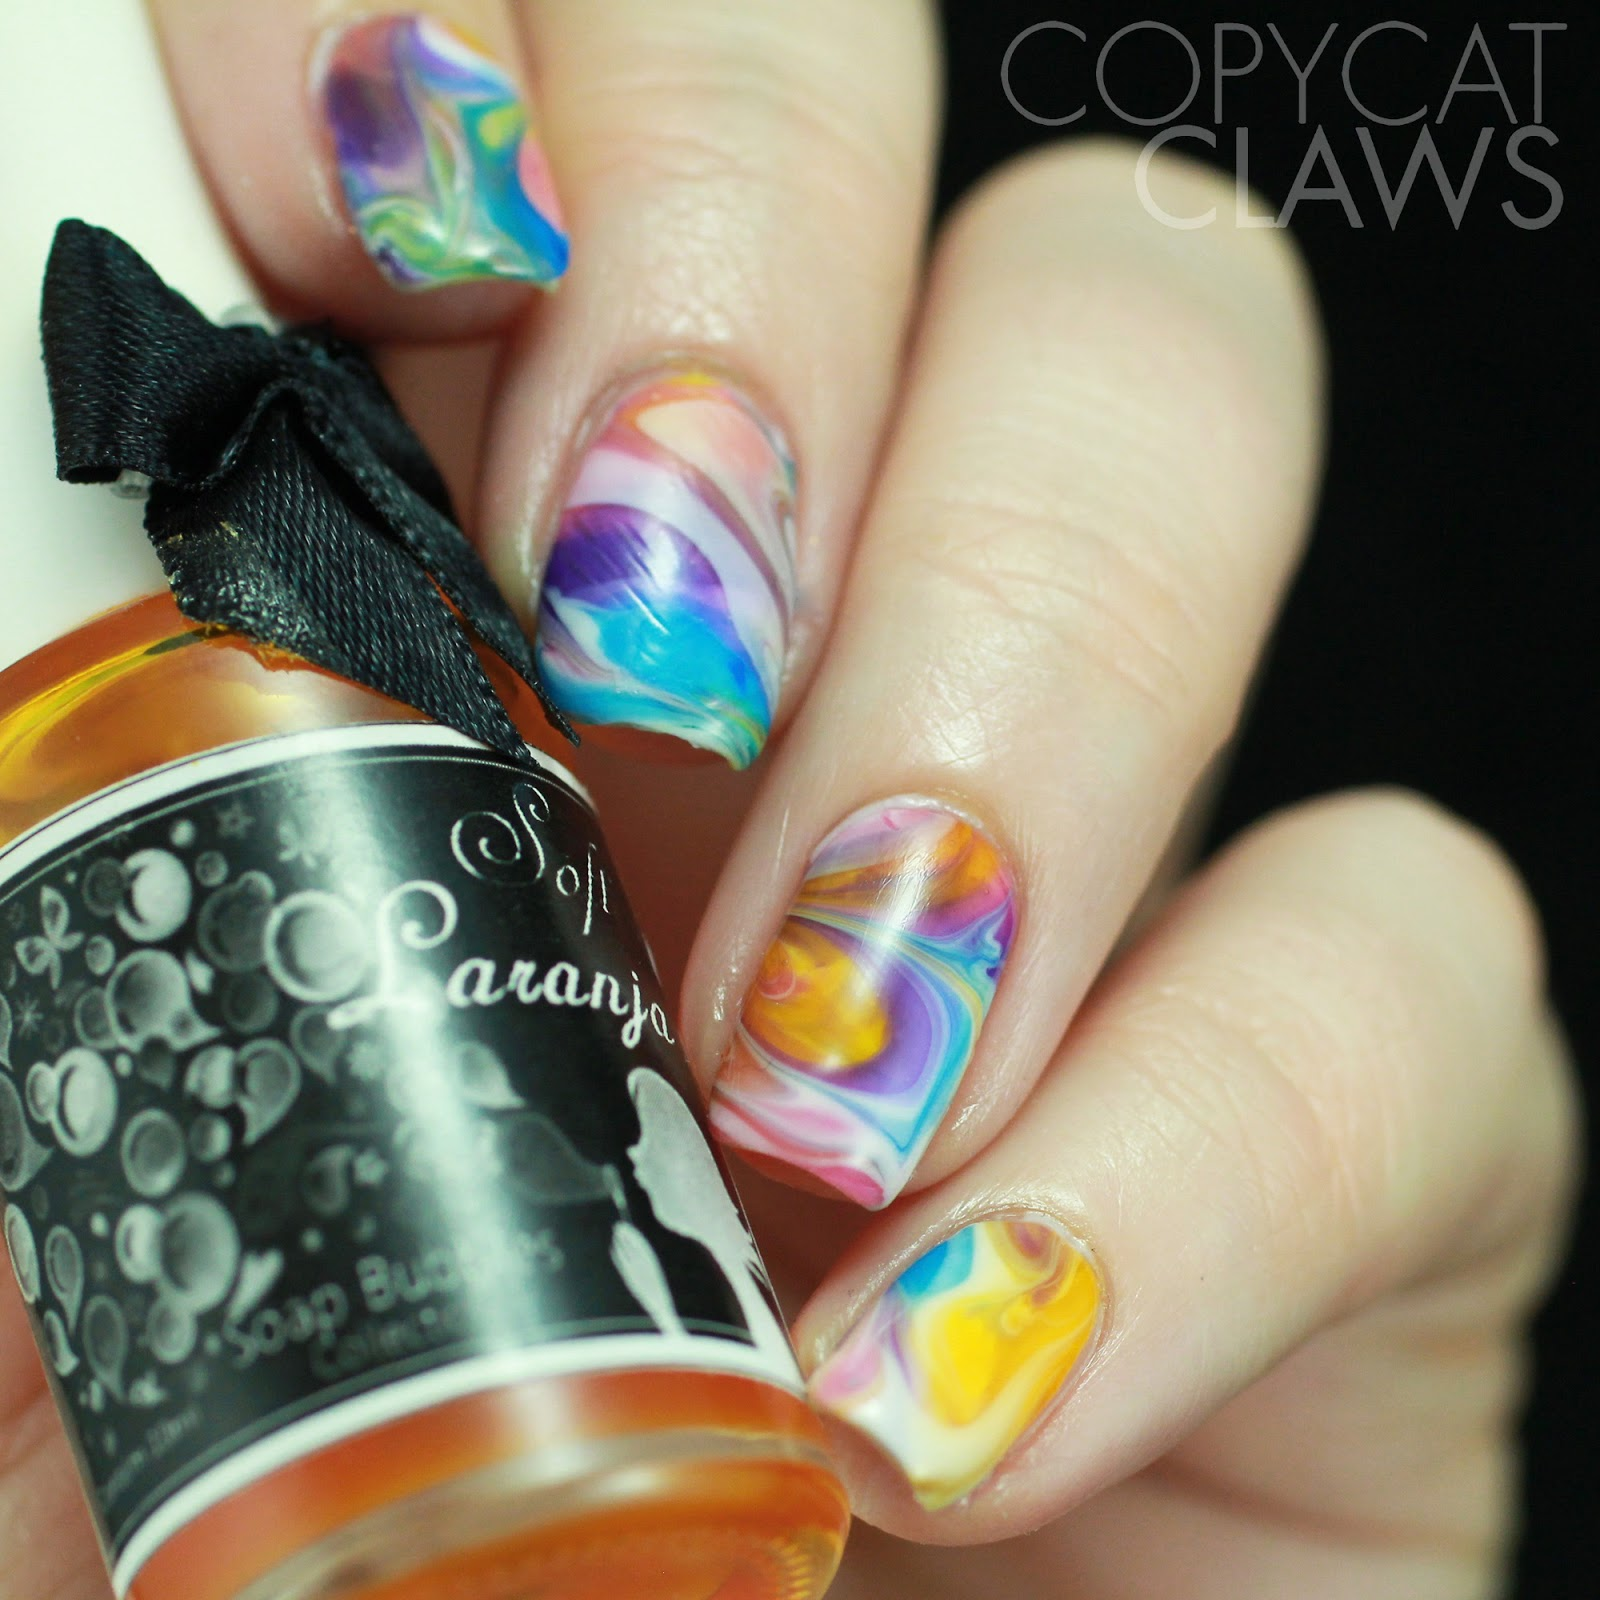 Copycat Claws 26 Great Nail Art Ideas Drag Or Dry Marble